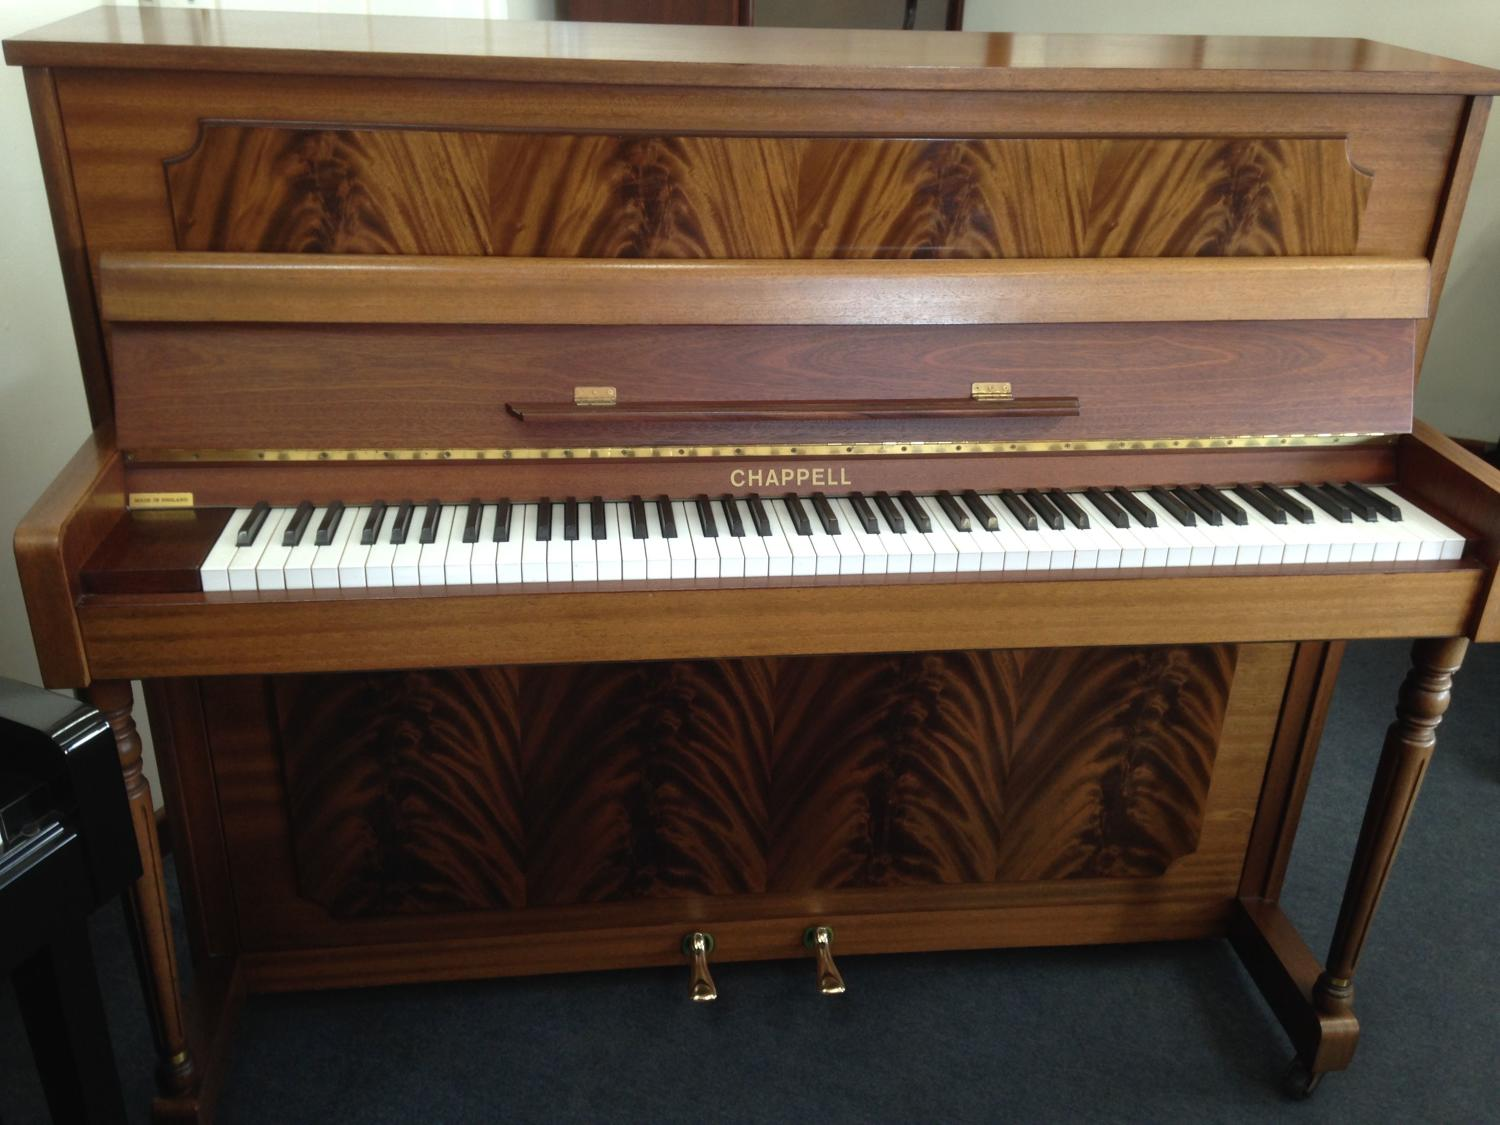 Chappell modern upright piano for sale